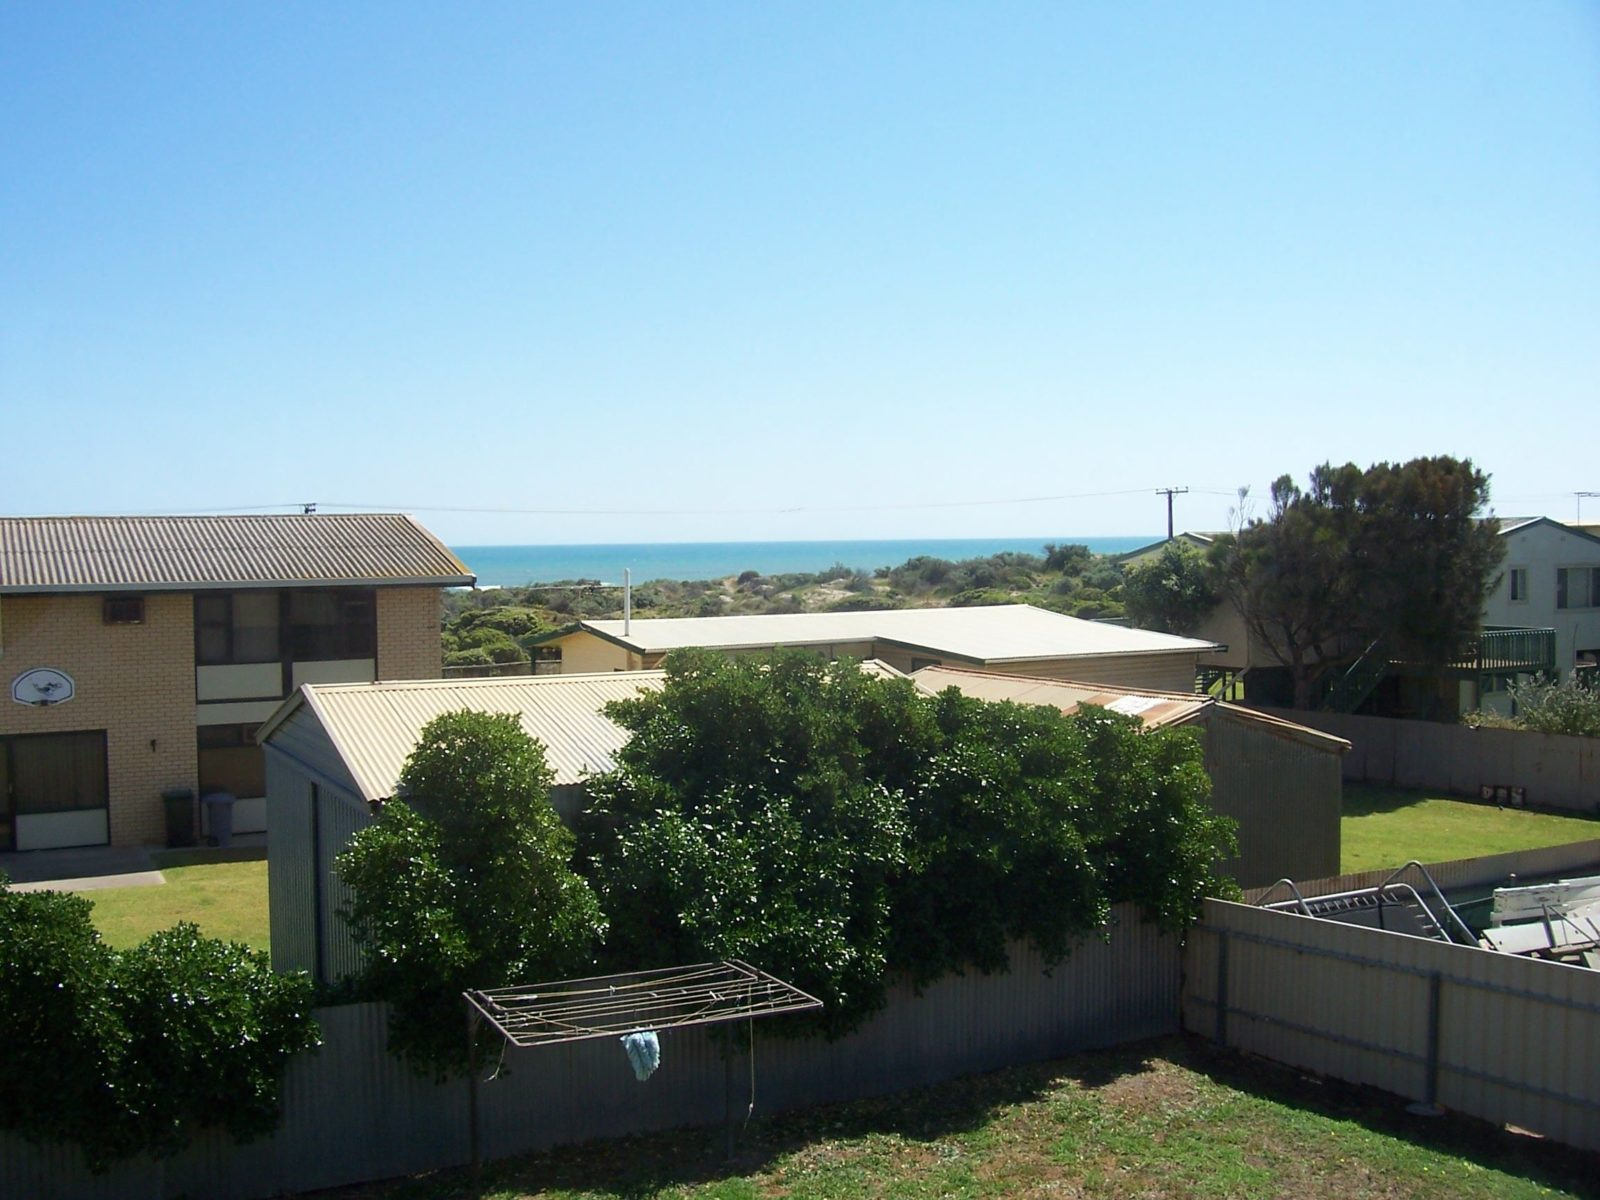 Century 21 SouthCoast: Silver Sands